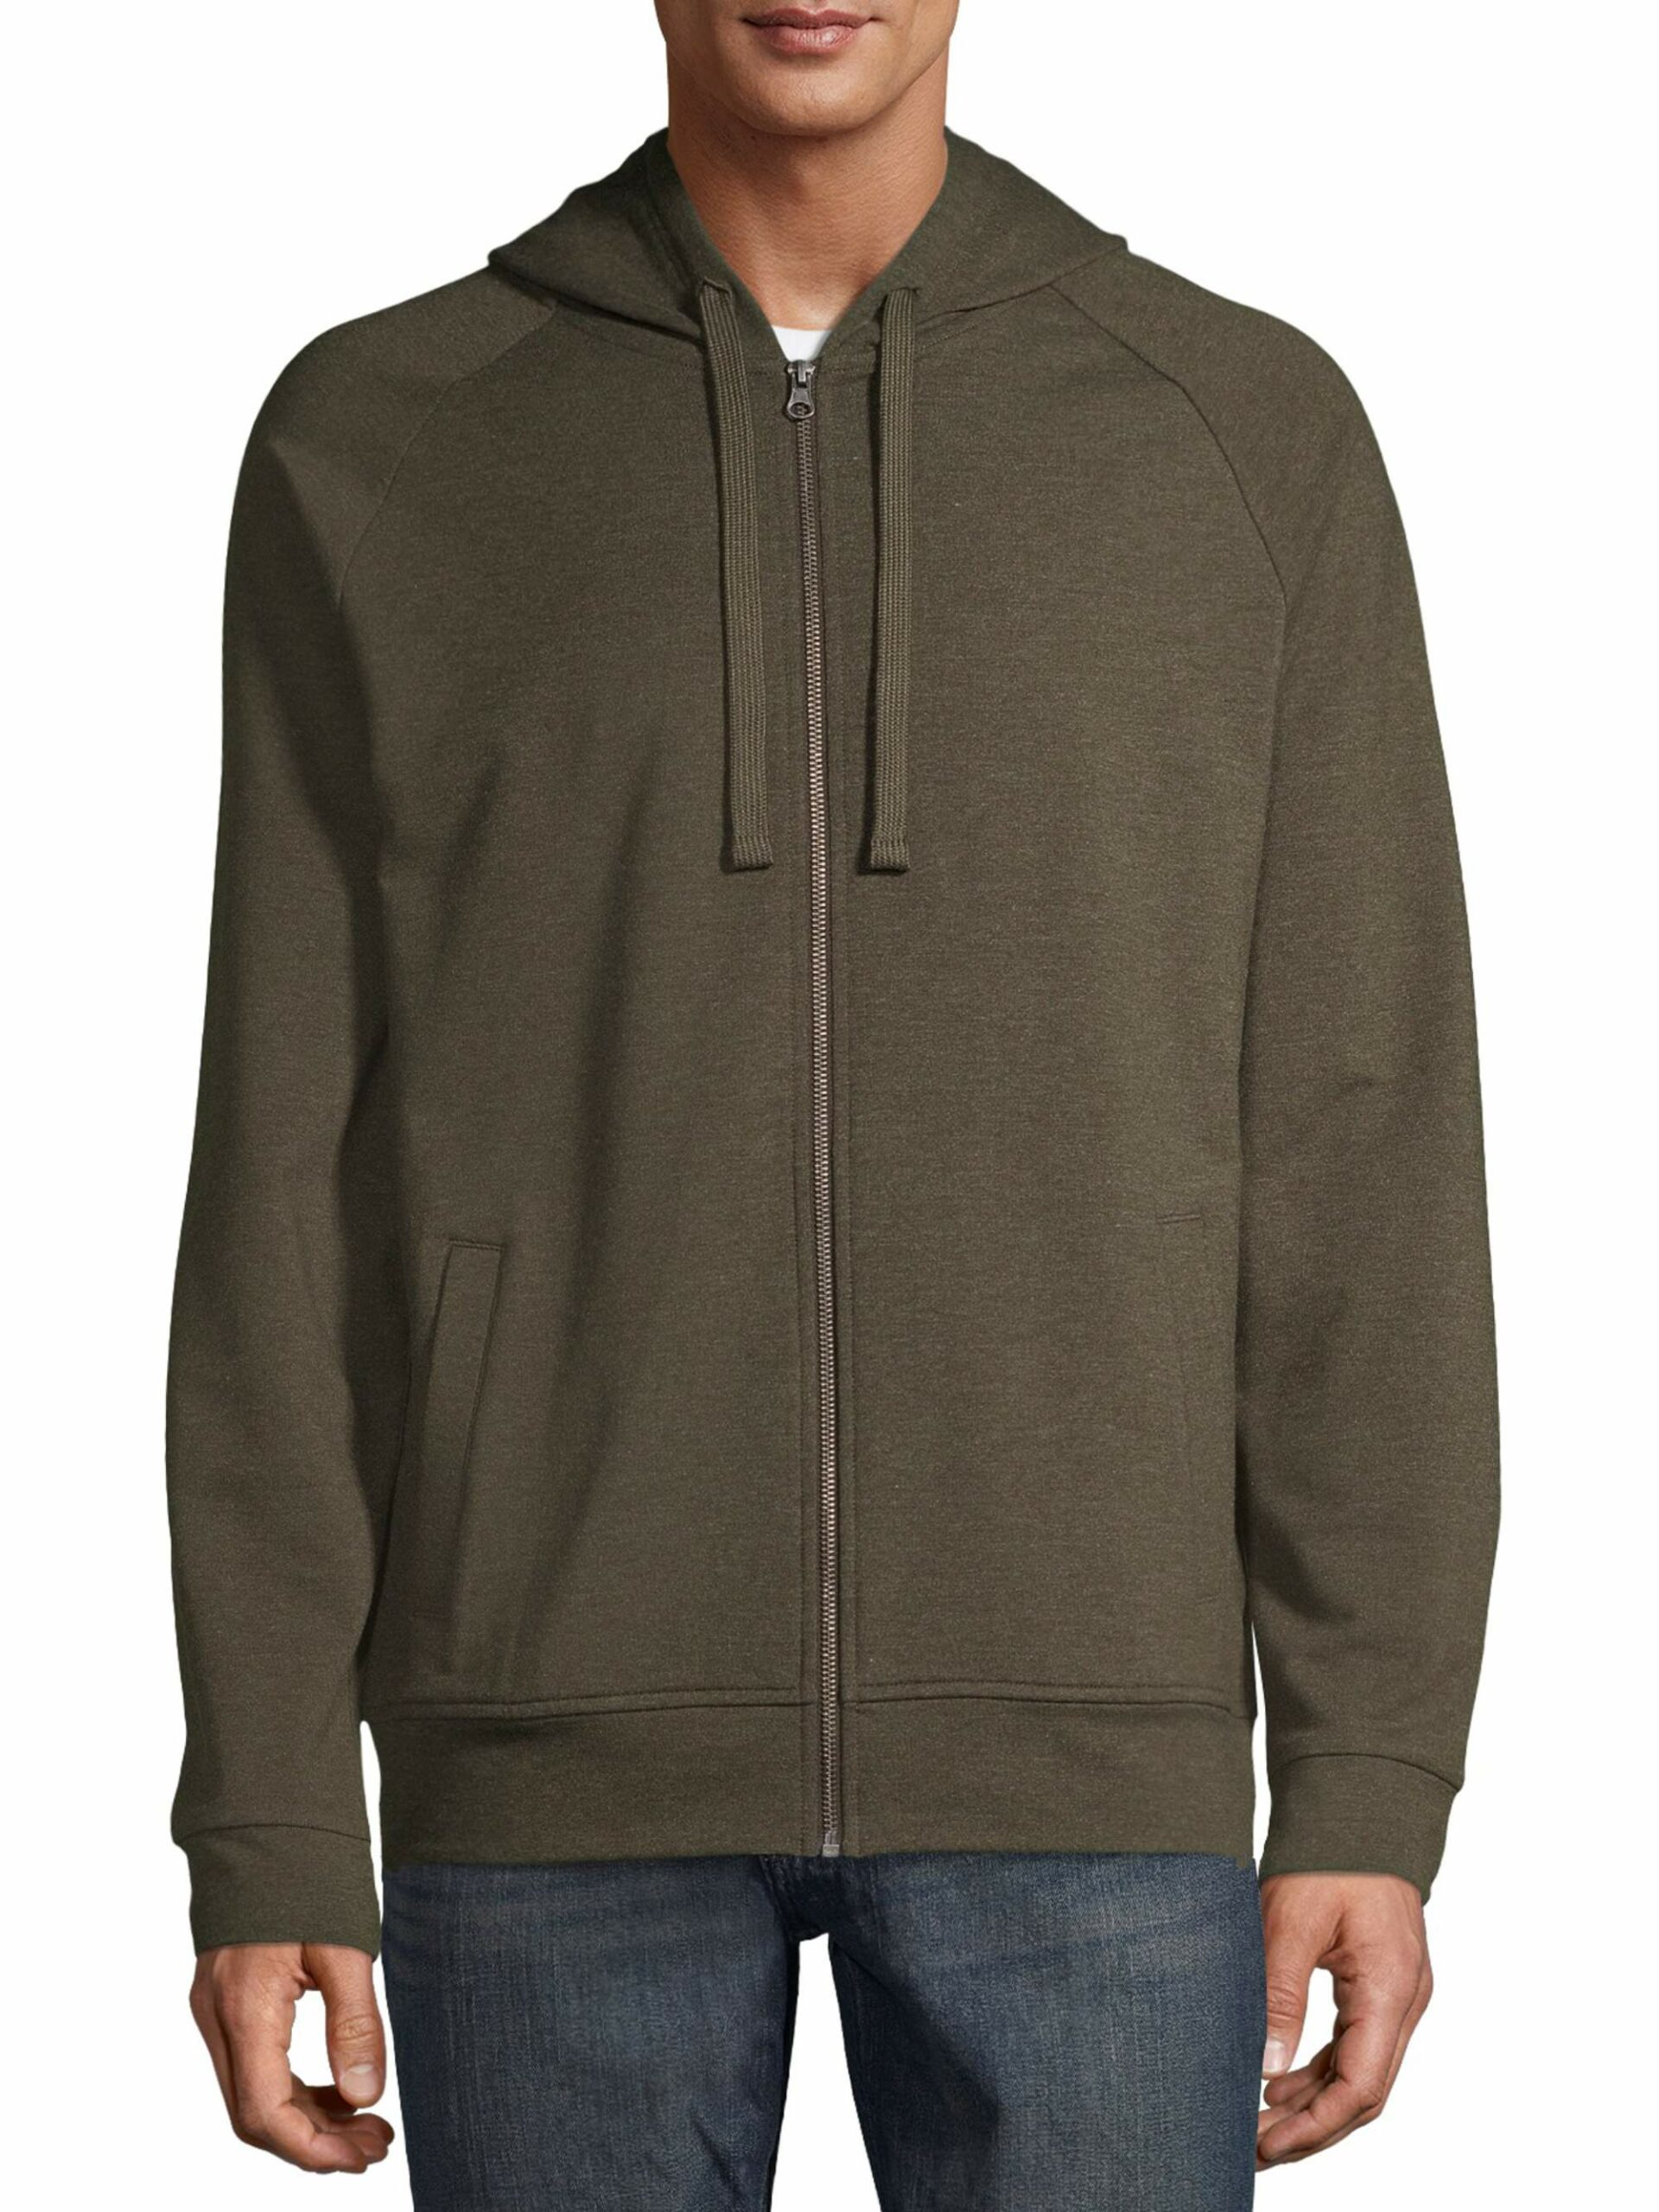 George Men's and Big Men's Fashion Full Zip Hoodie Smoky Olive Heather, up to Size M 38-40